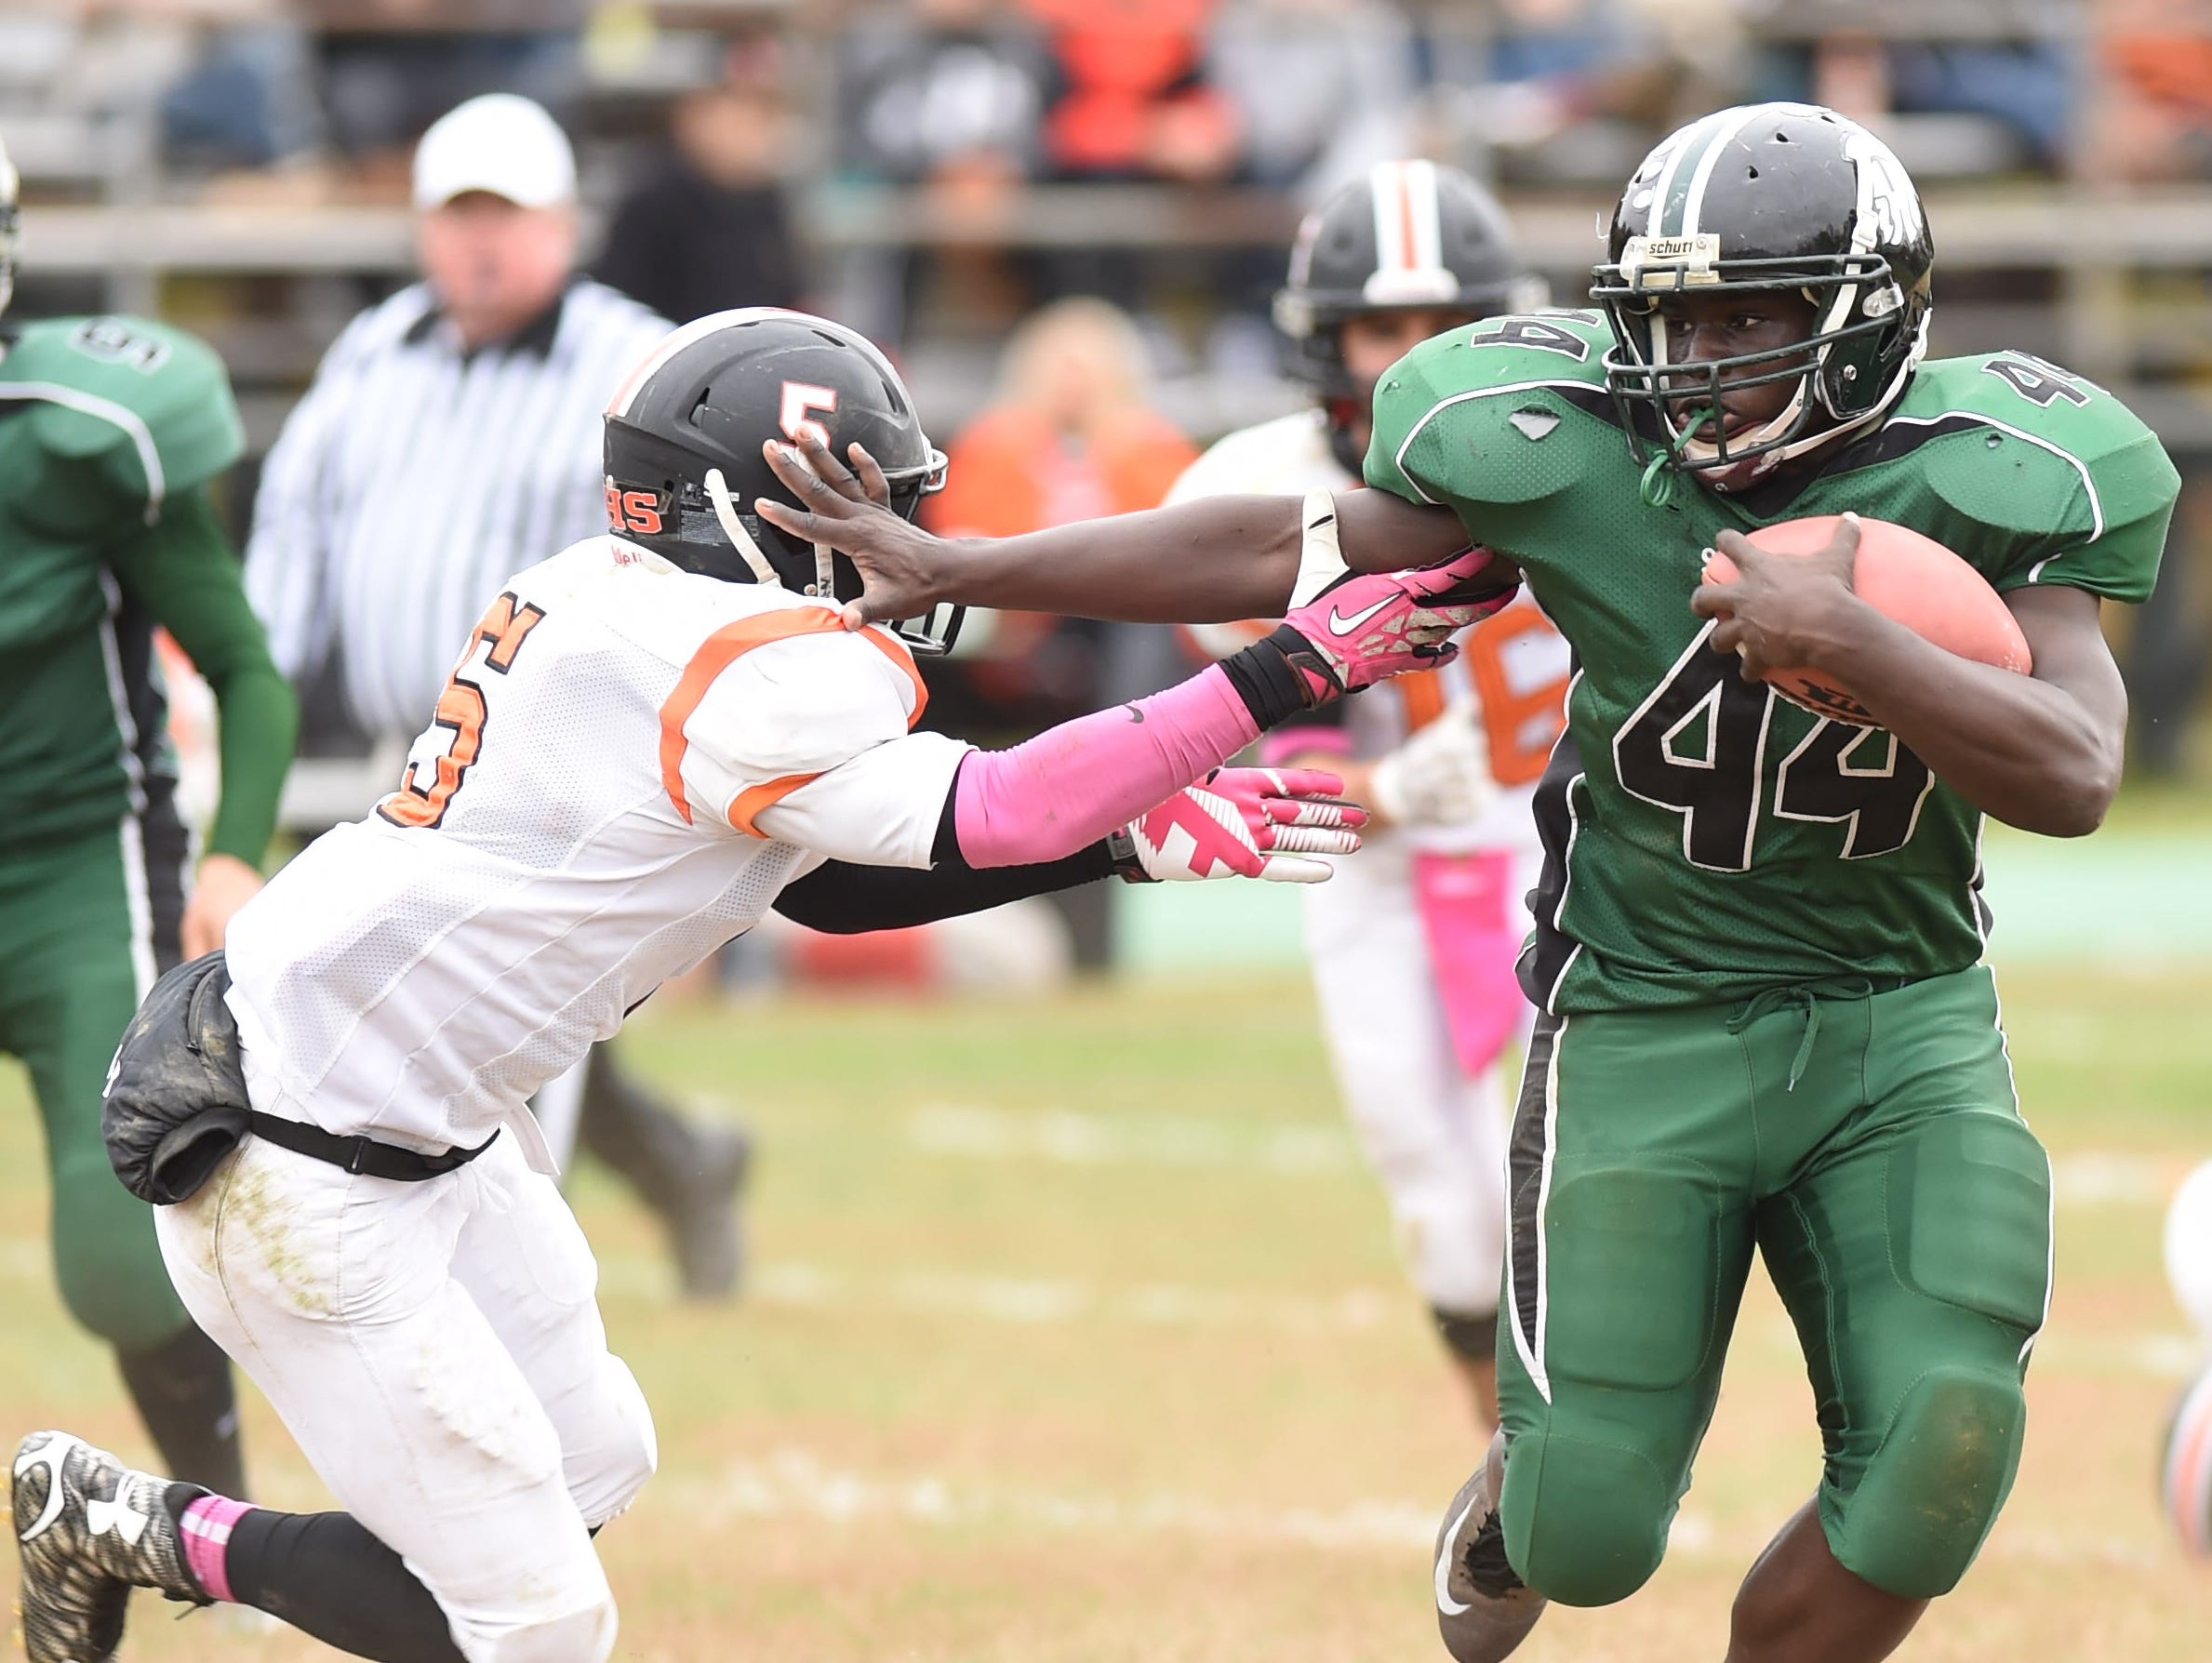 Spackenkill's Dhyquem Lewinson deflects Dover's Jaquon Futrell during Saturday's game in Poughkeepsie.